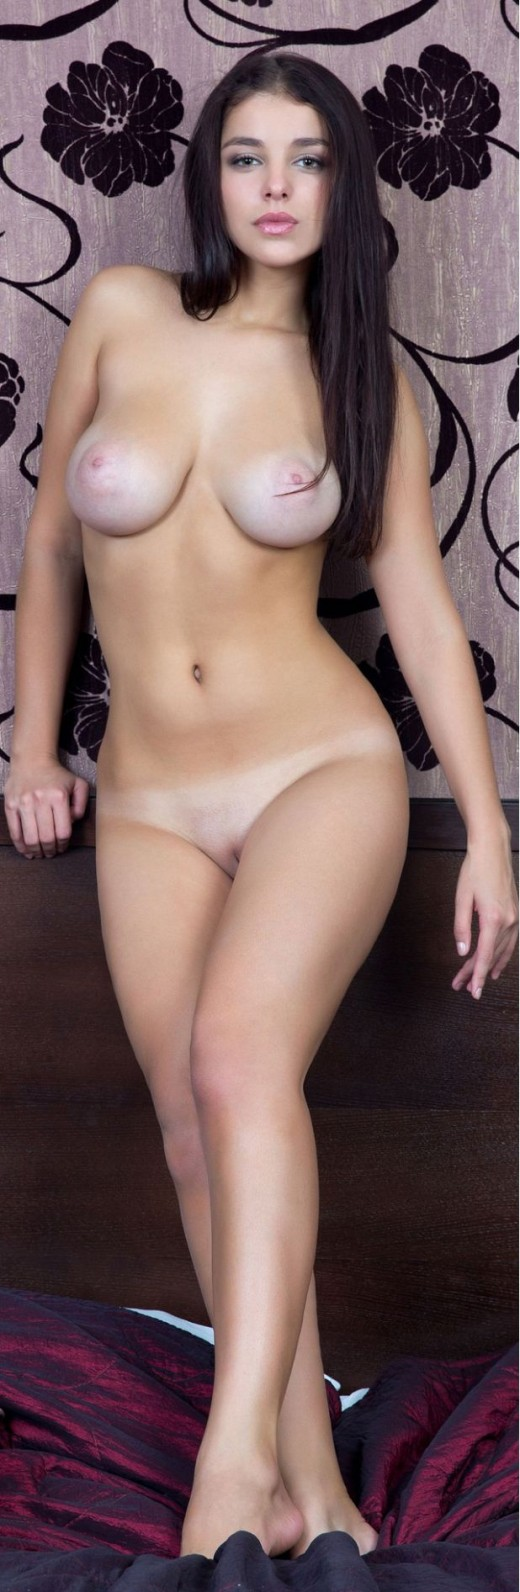 Cute Bonita – nude girl with amazingly sexy body